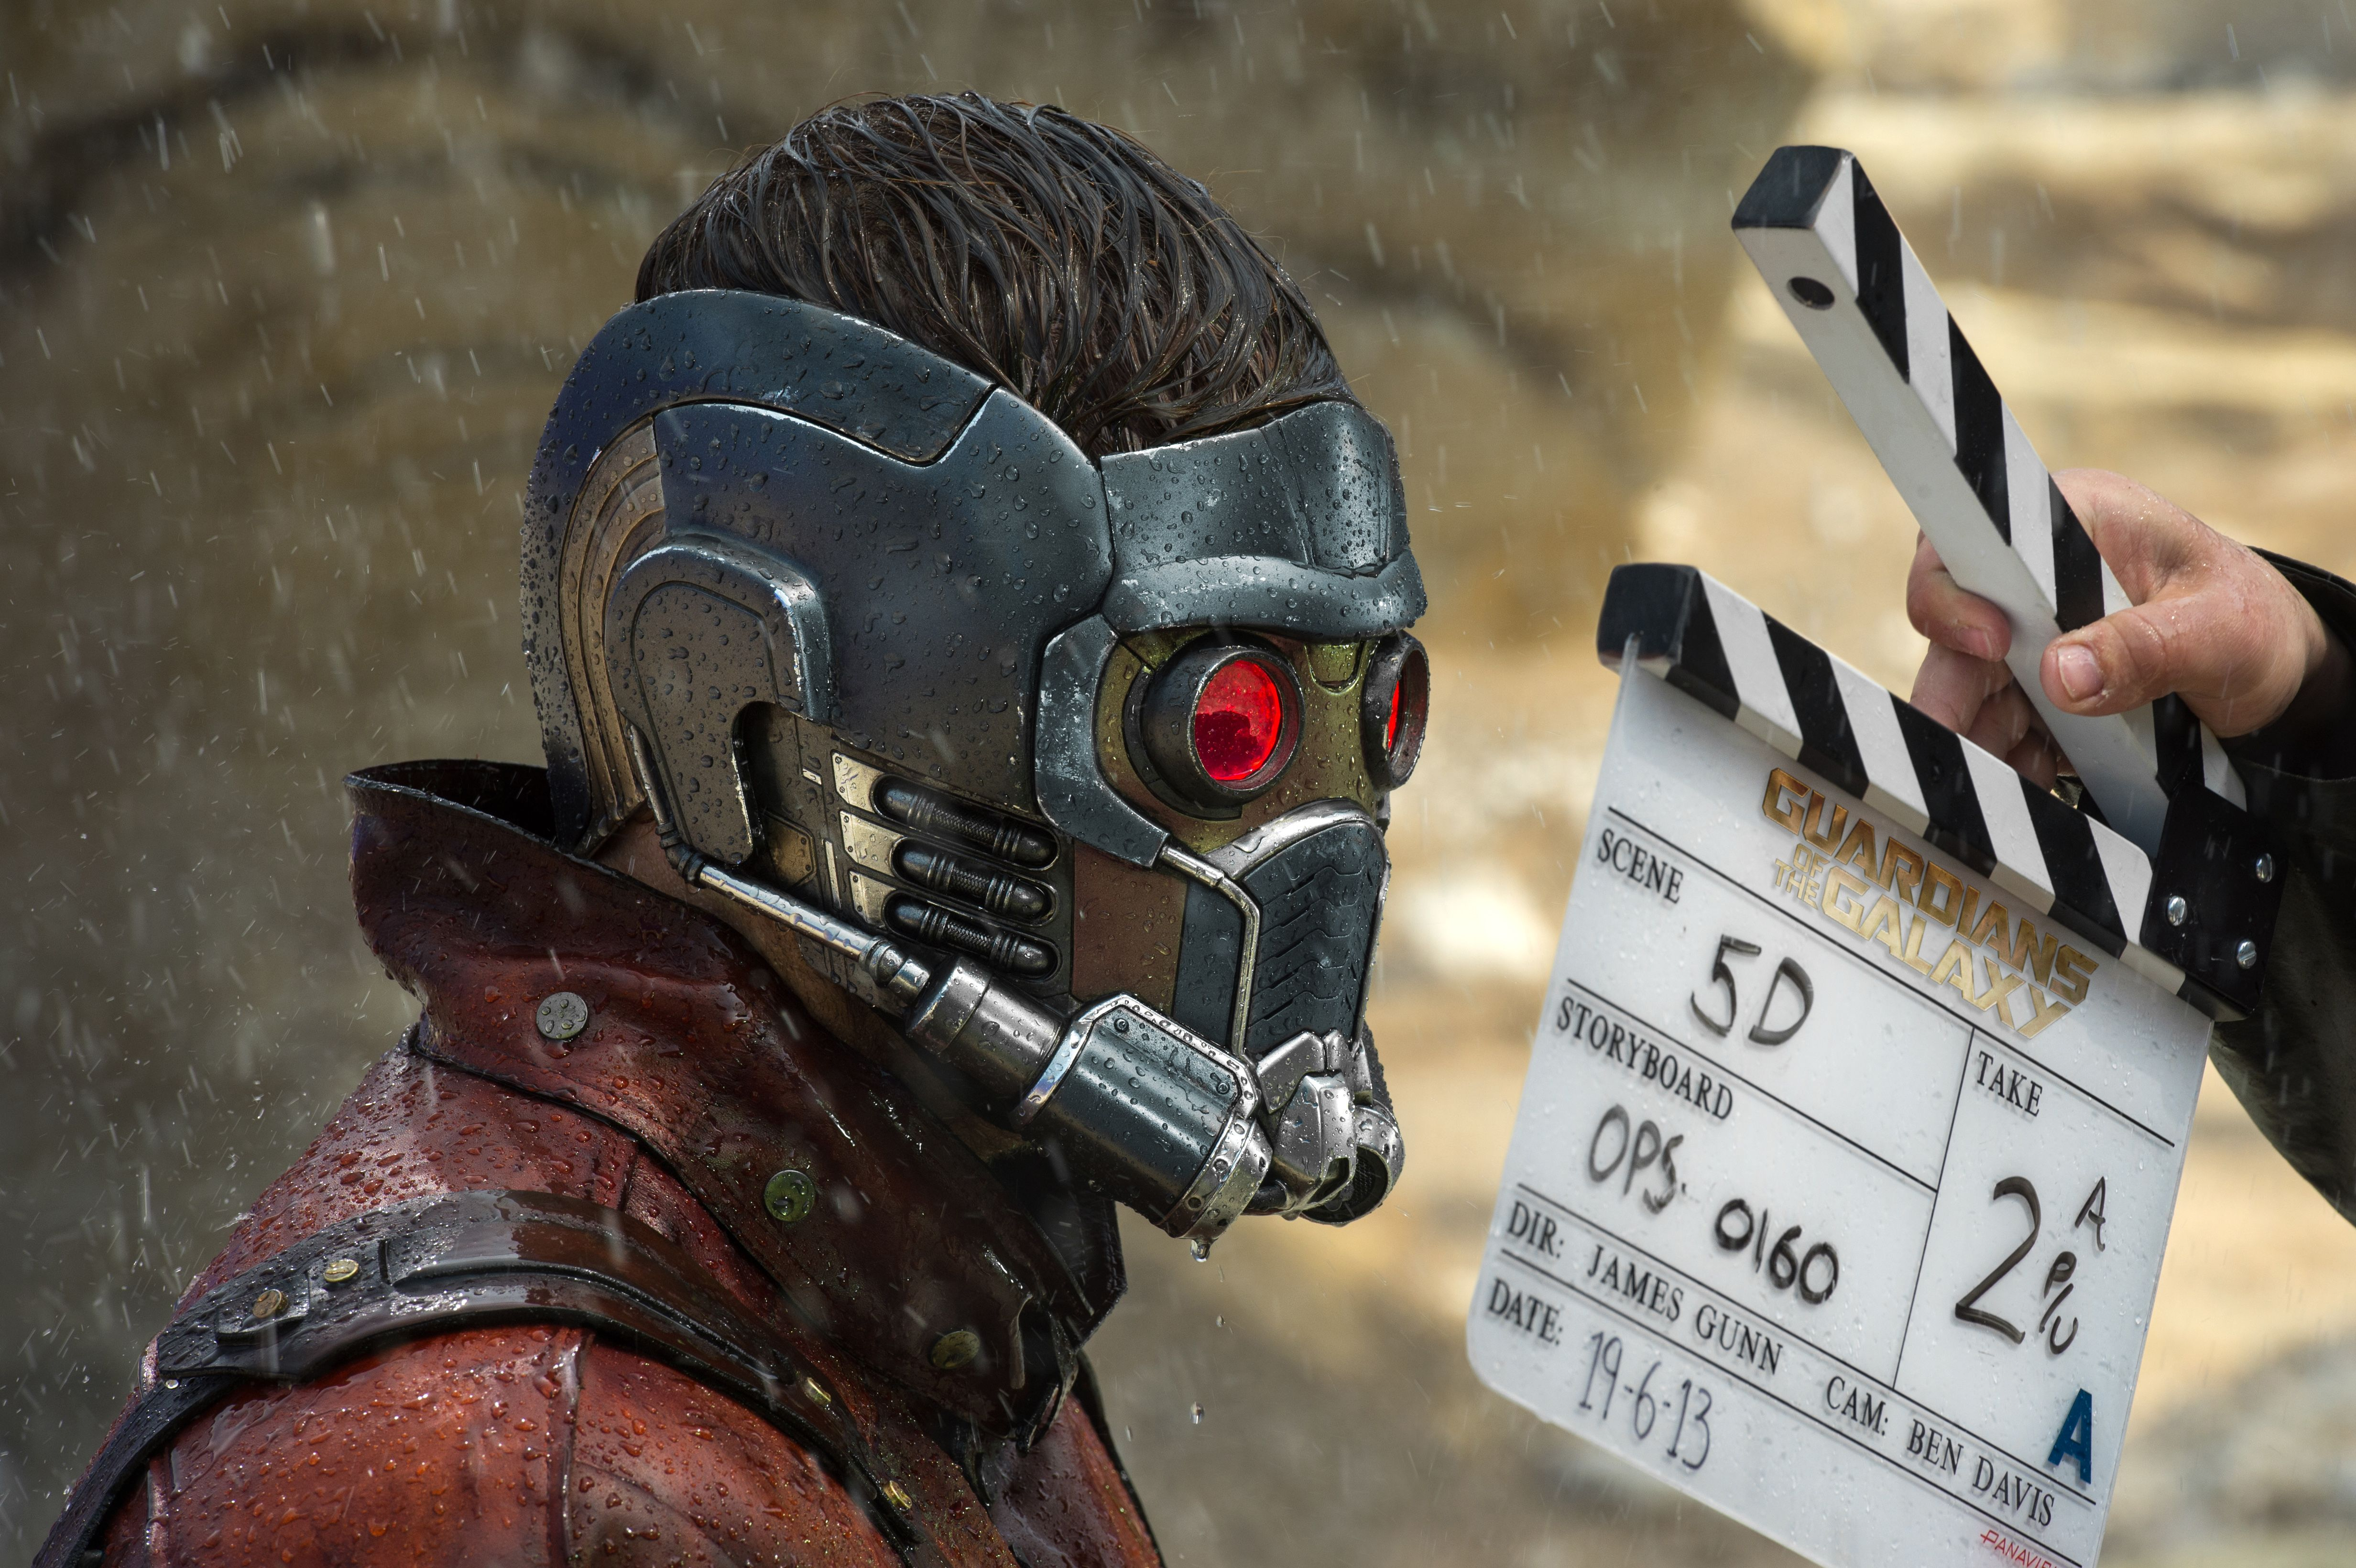 Star-Lord #GuardianesDeLaGalaxia